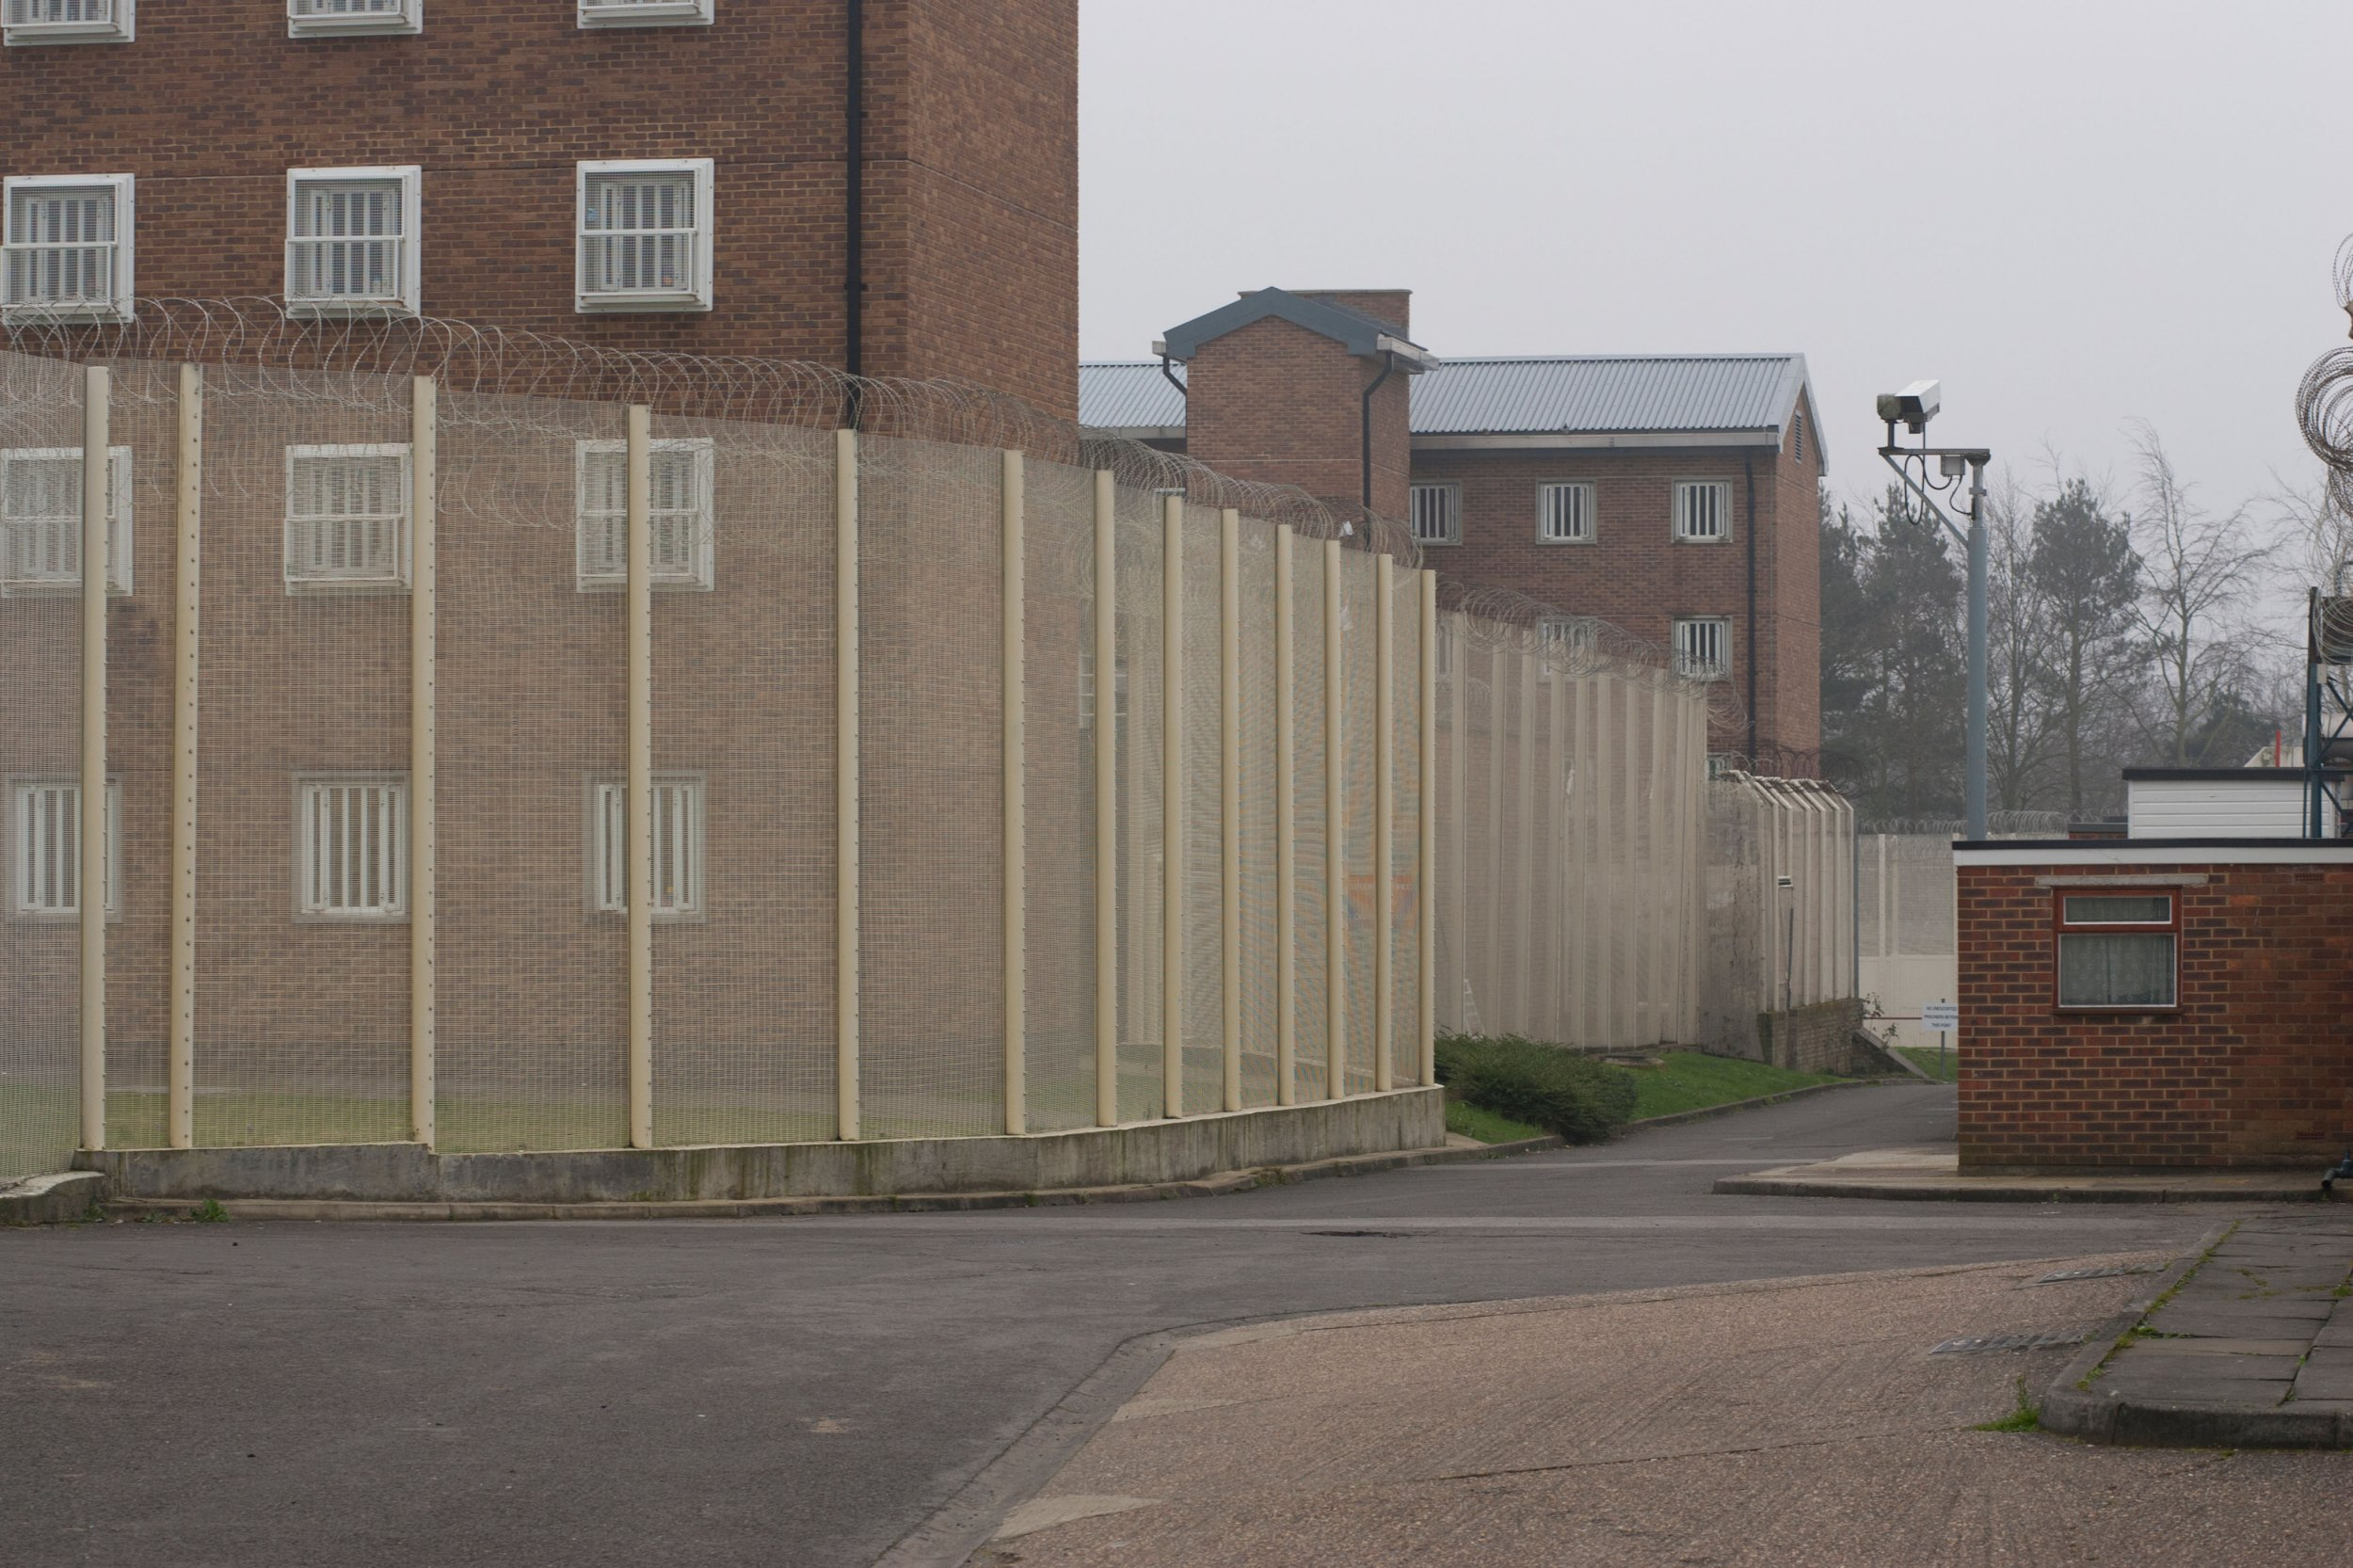 CB5NB5 Inner security Fence Coldingley Prison Surrey. Image shot 2011. Exact date unknown.